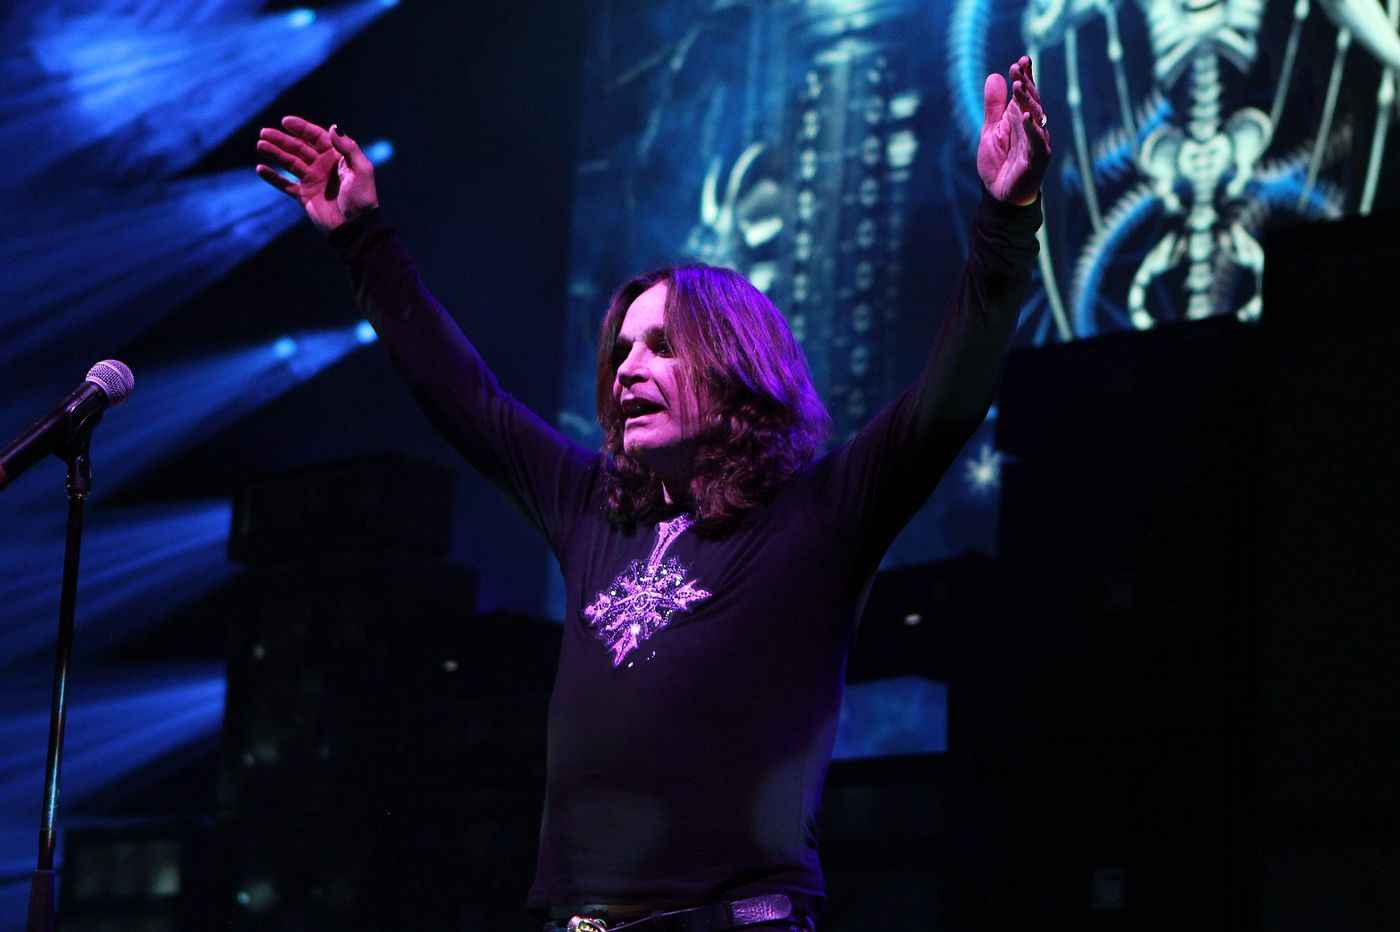 Ozzy Osbourne returns to the BB&T Pavilion for what might be the final time